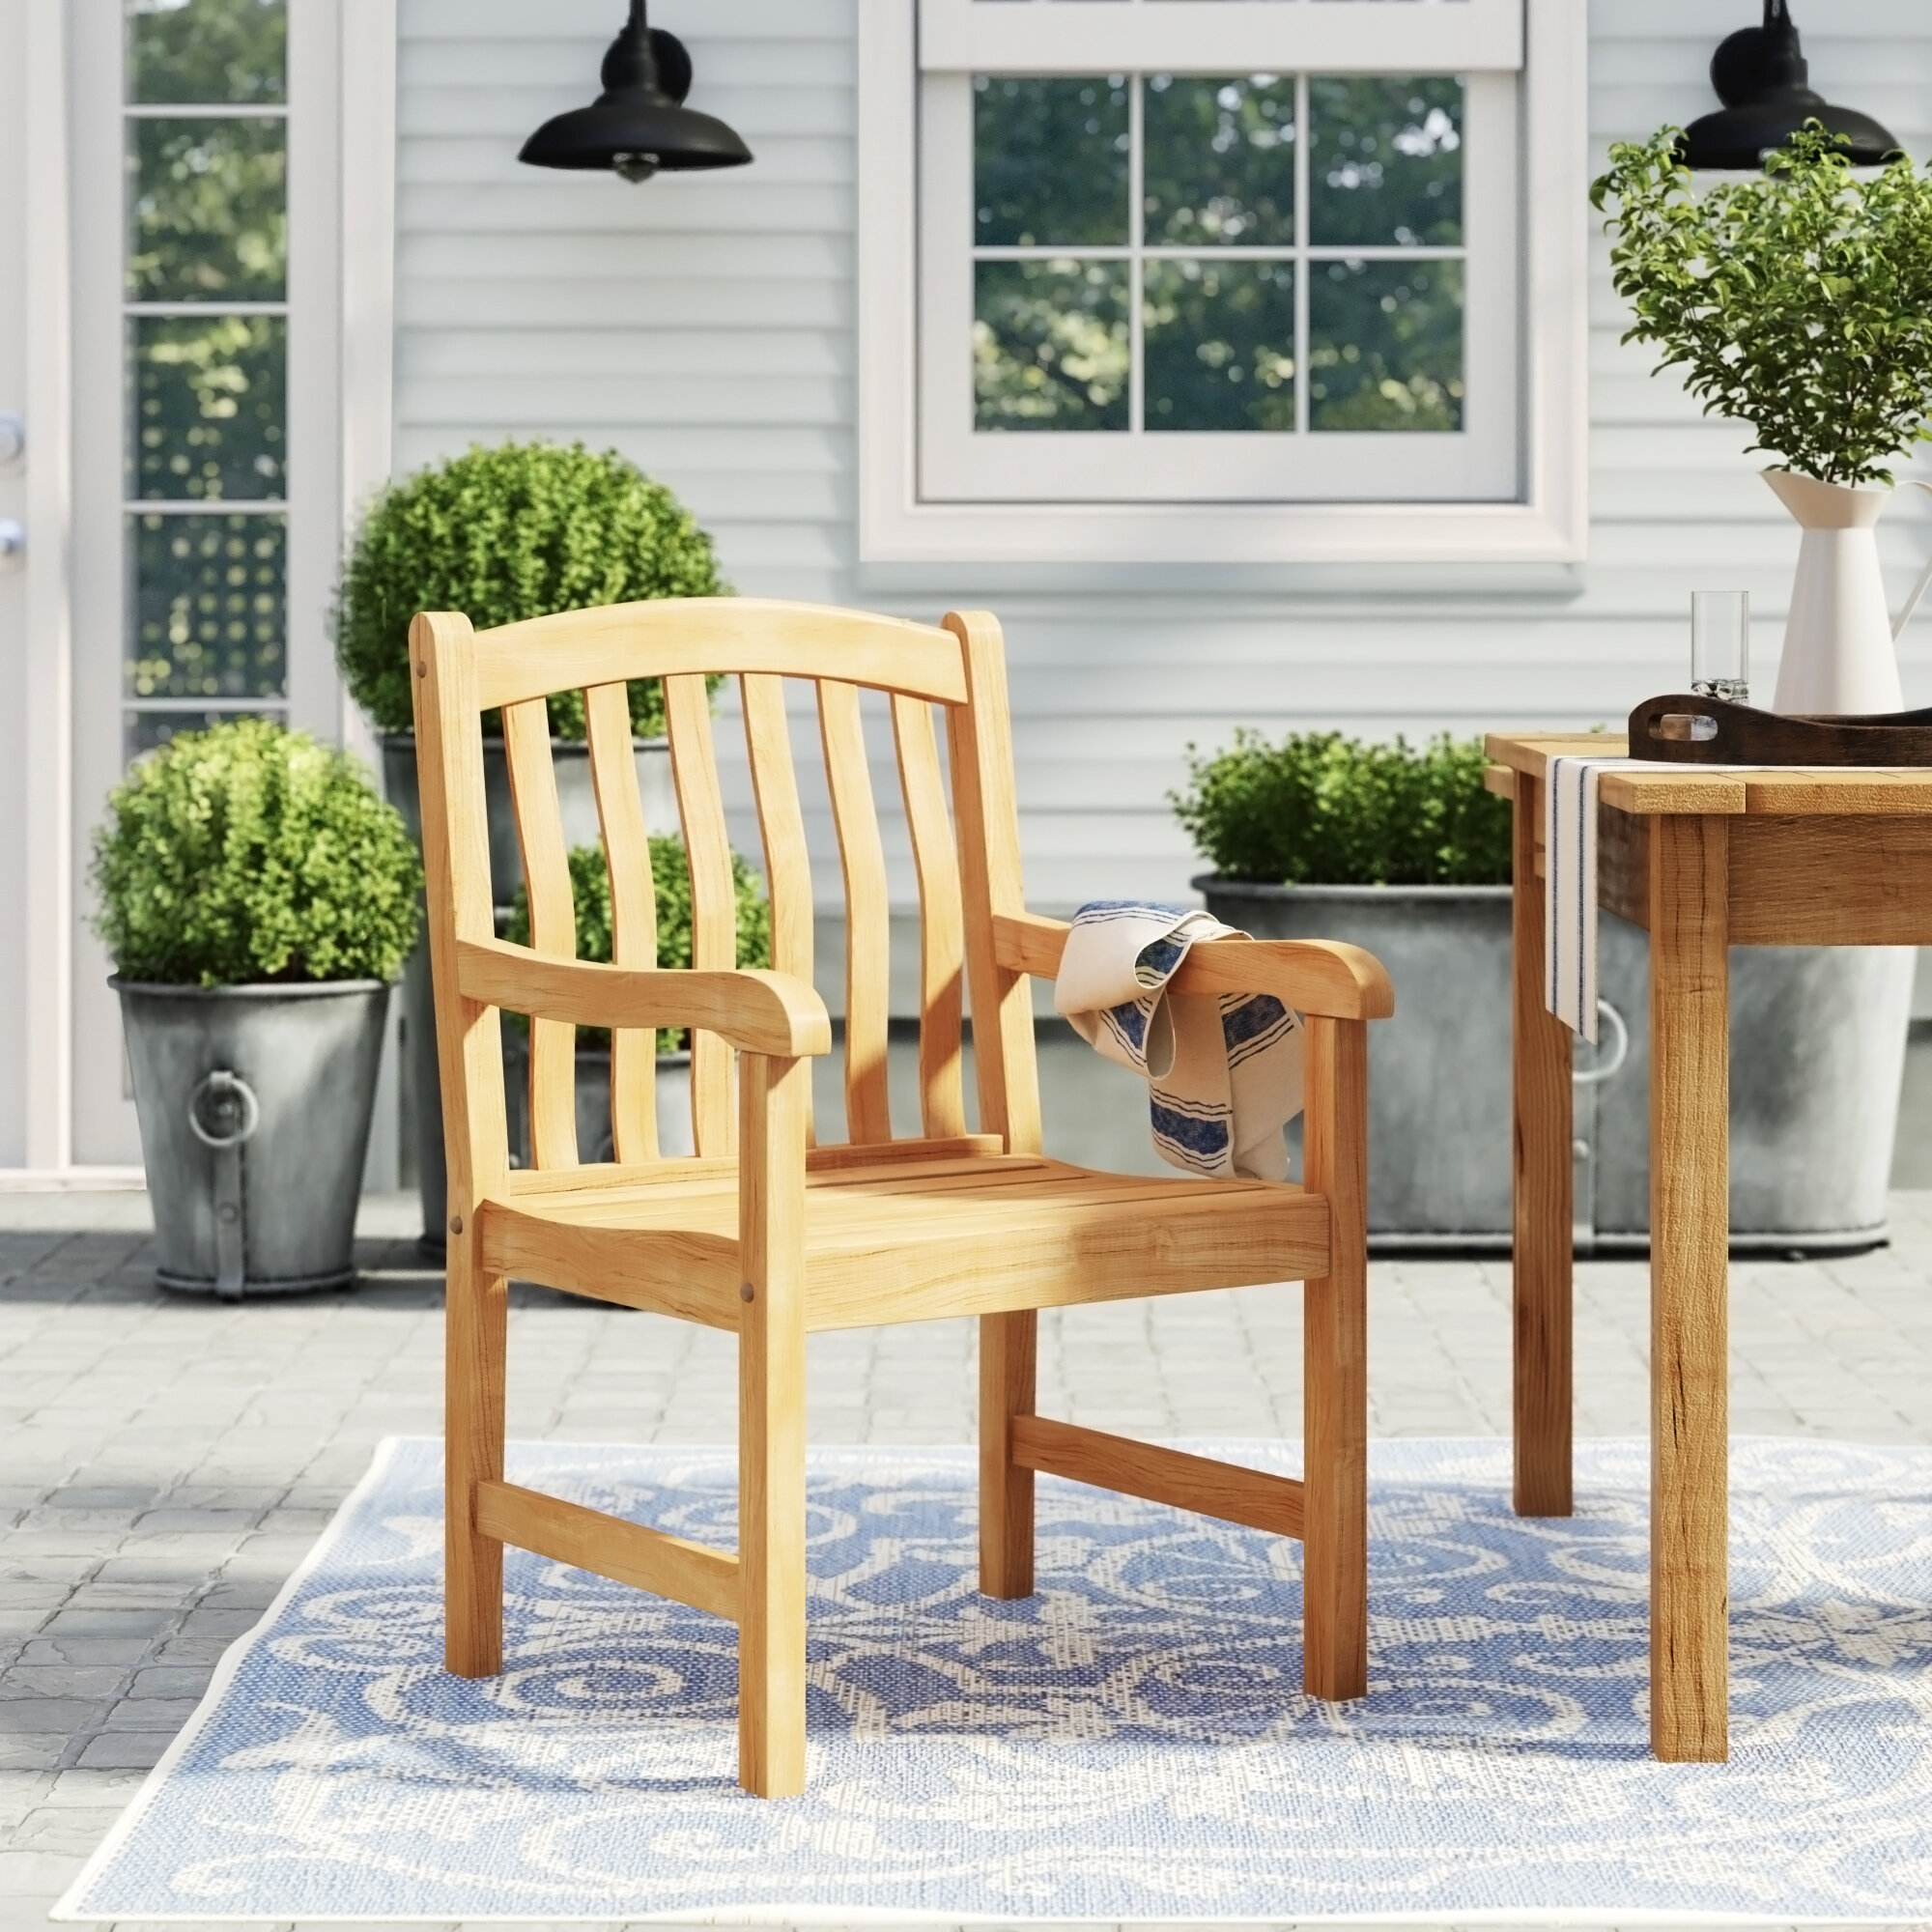 Stupendous Farmhouse Rustic Outdoor Dining Chairs Birch Lane Interior Design Ideas Gentotryabchikinfo